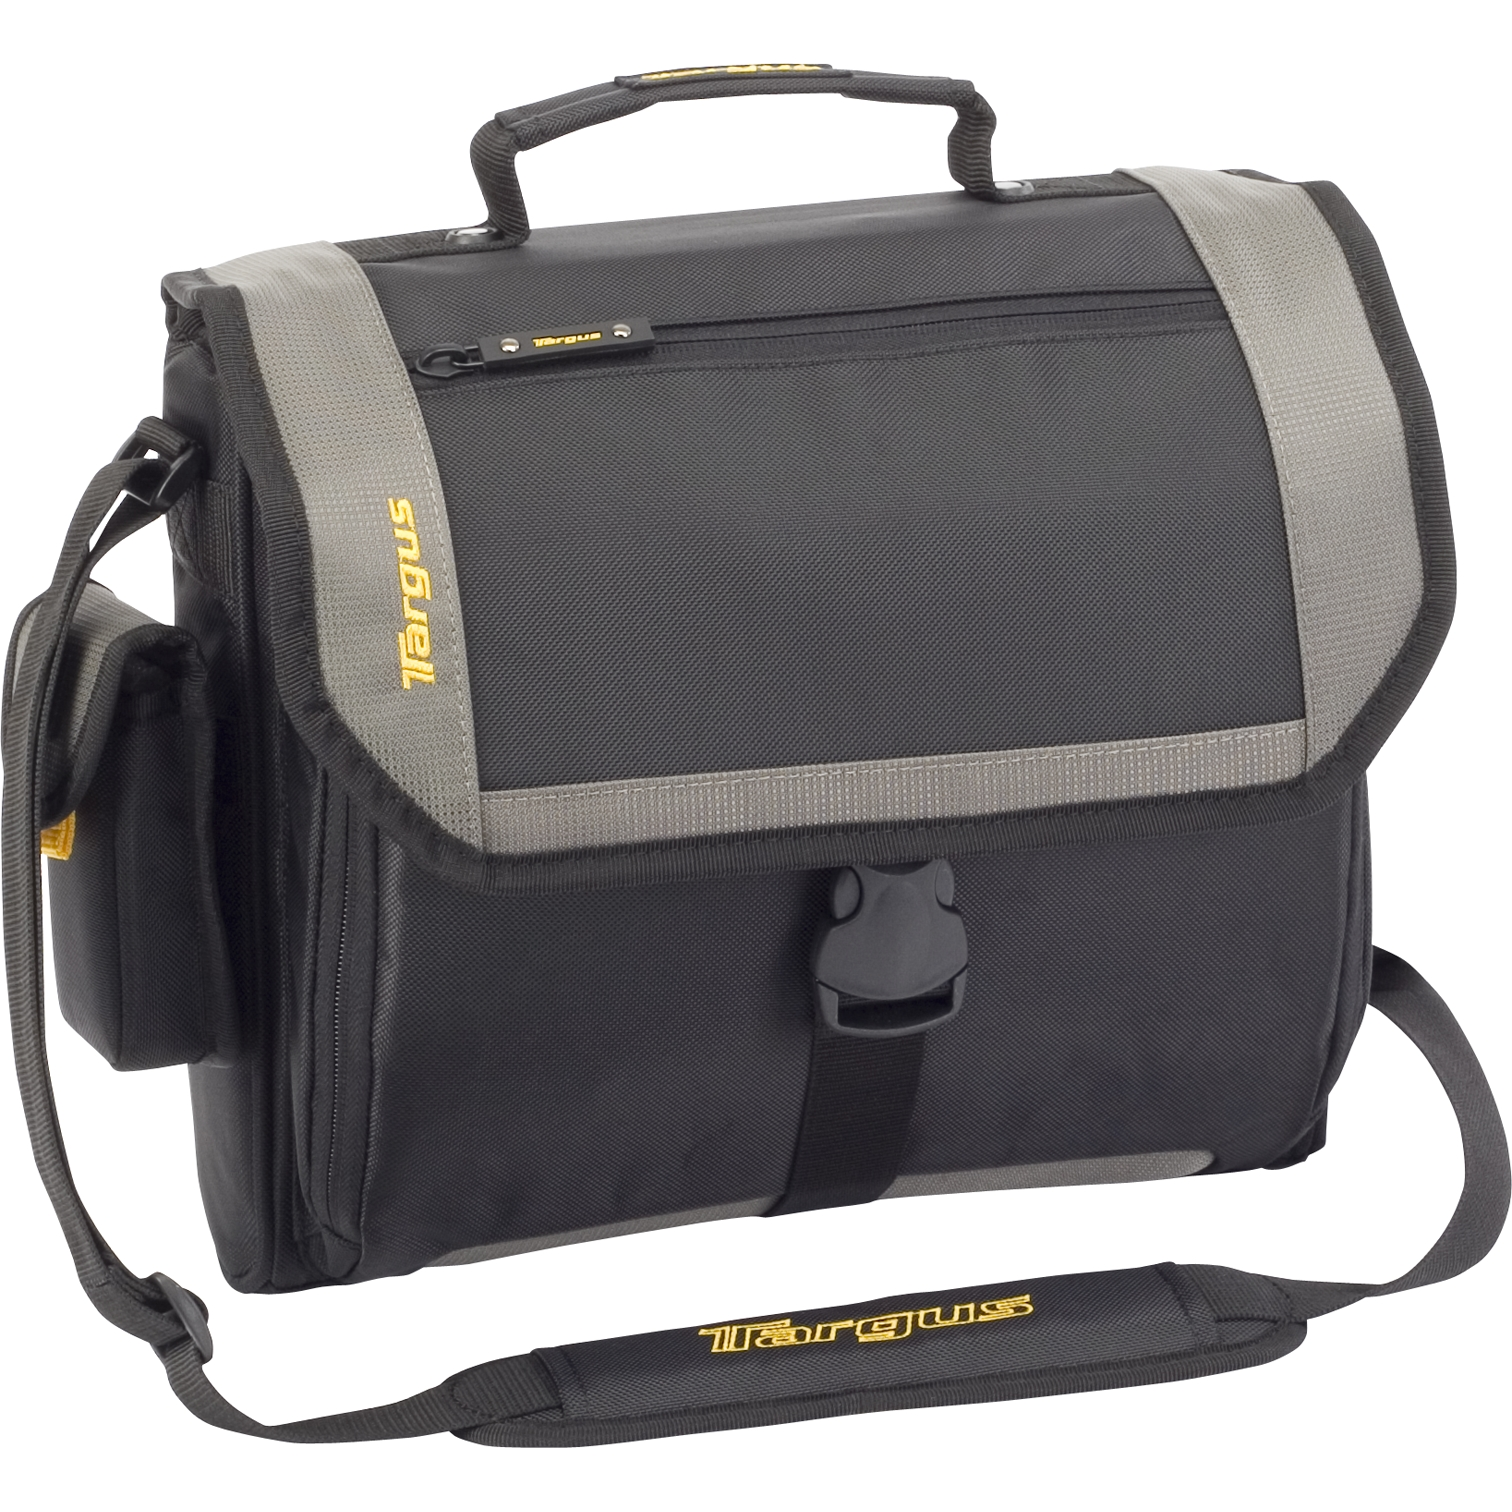 "14"" CityGear Atlanta Messenger - TCG213T - Black/Gray: Messengers ..."